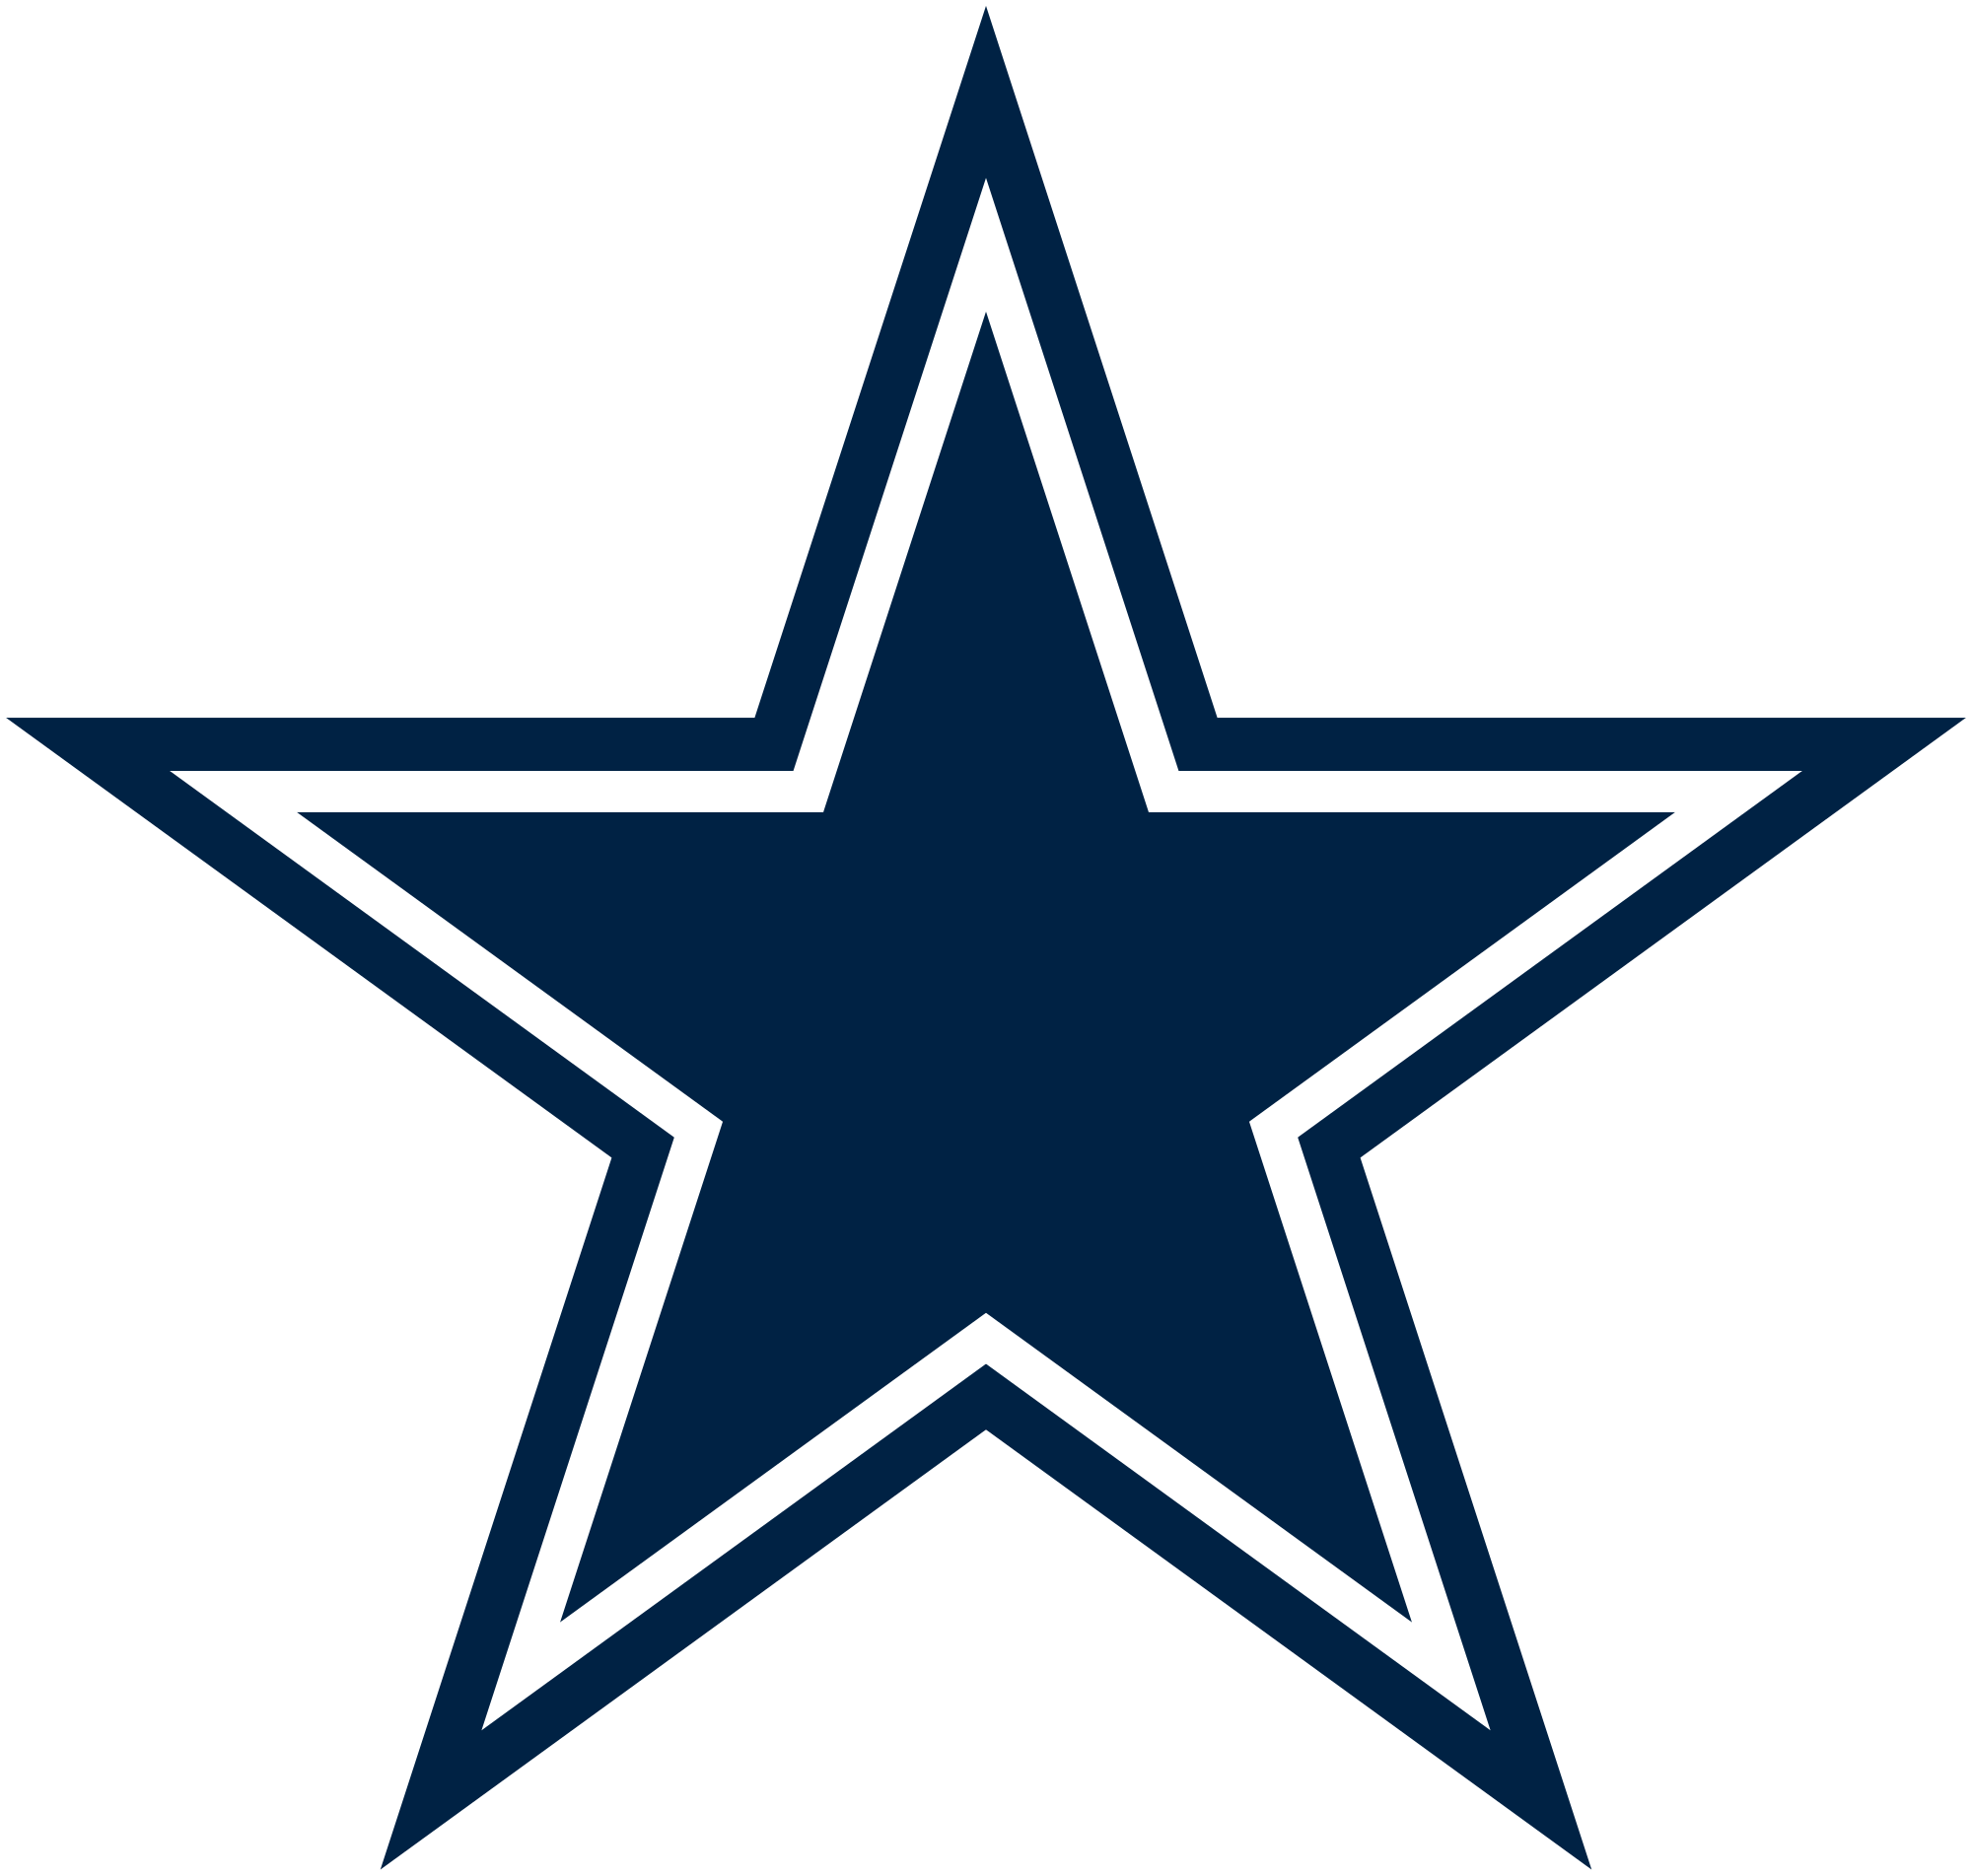 Dallas Cowboys svg, Cowboys c